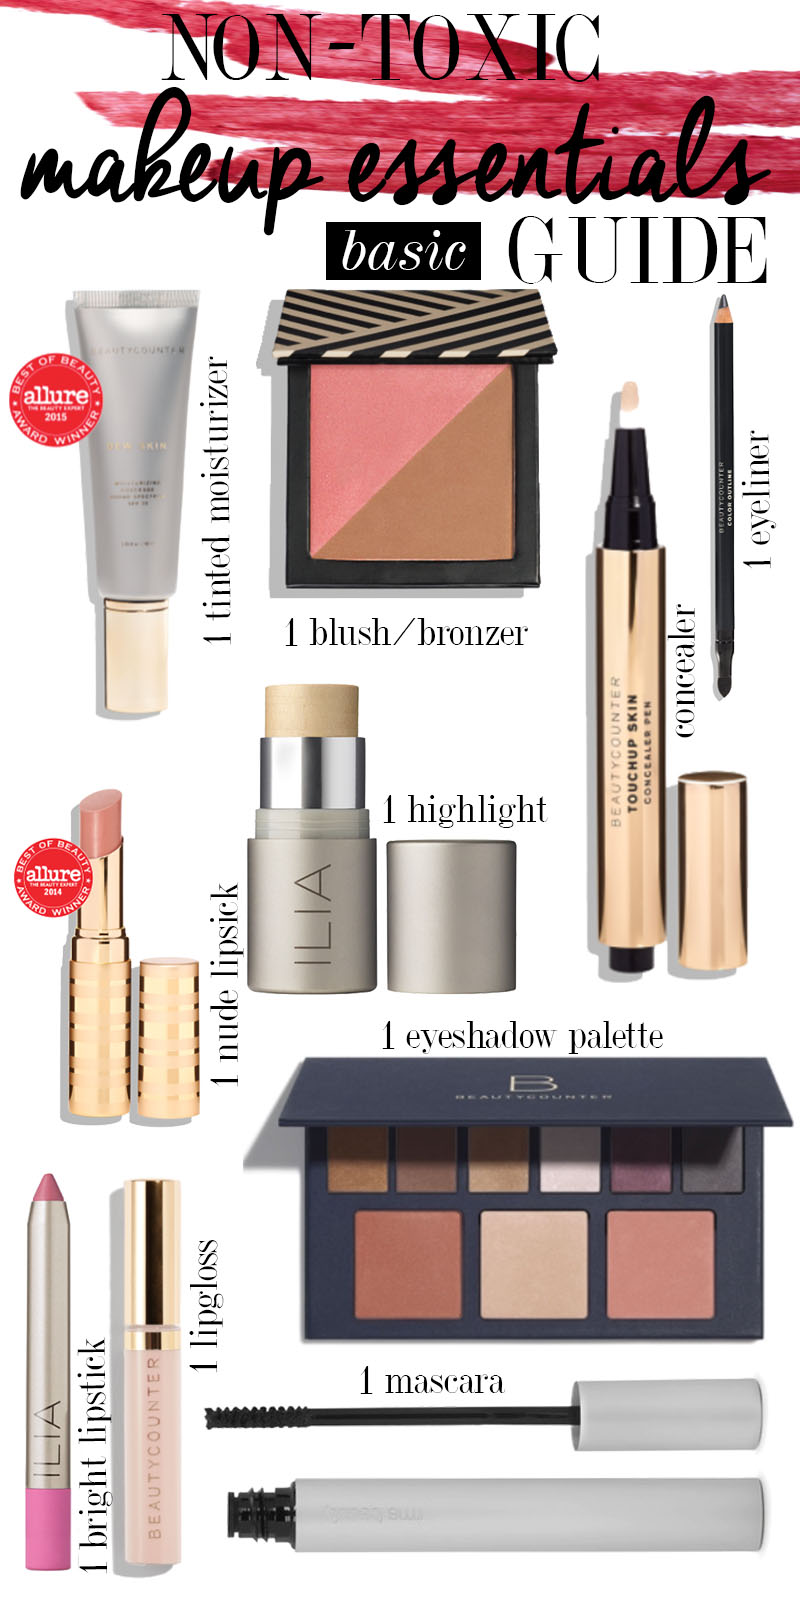 Ultimate Non-Toxic Makeup Essentials Beauty Guide - Citizens of Beauty